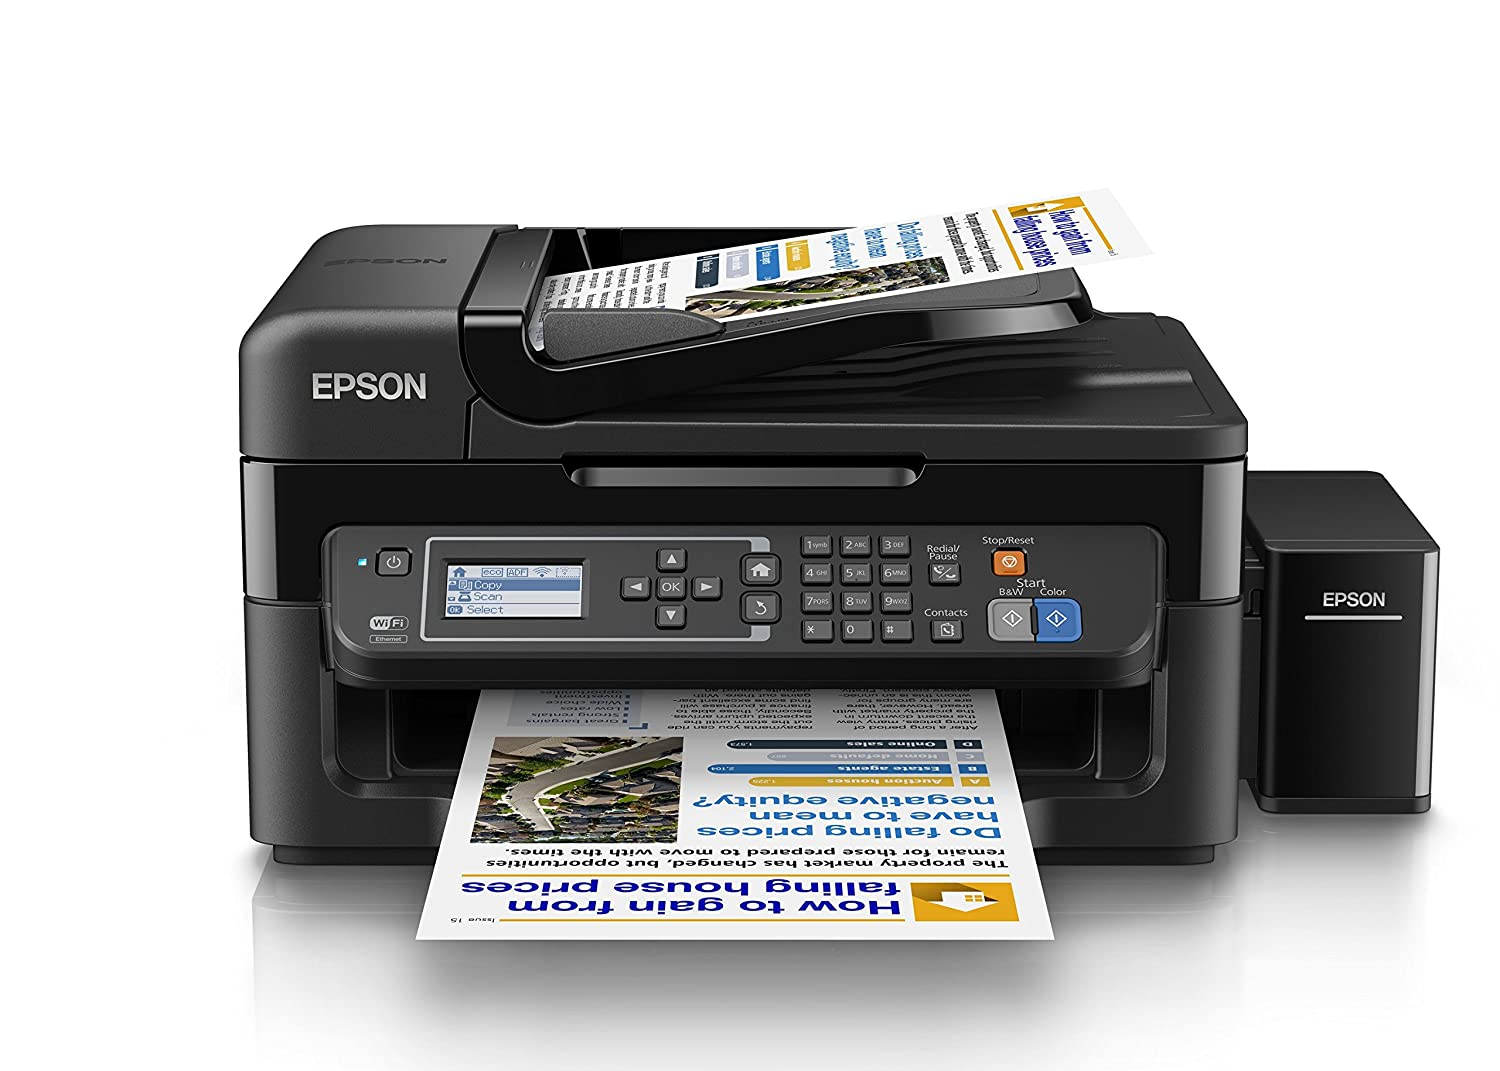 Epson L565 Wi Fi All In One Ink Tank Printer Canon Pixma E510 Multifunction Inkjet